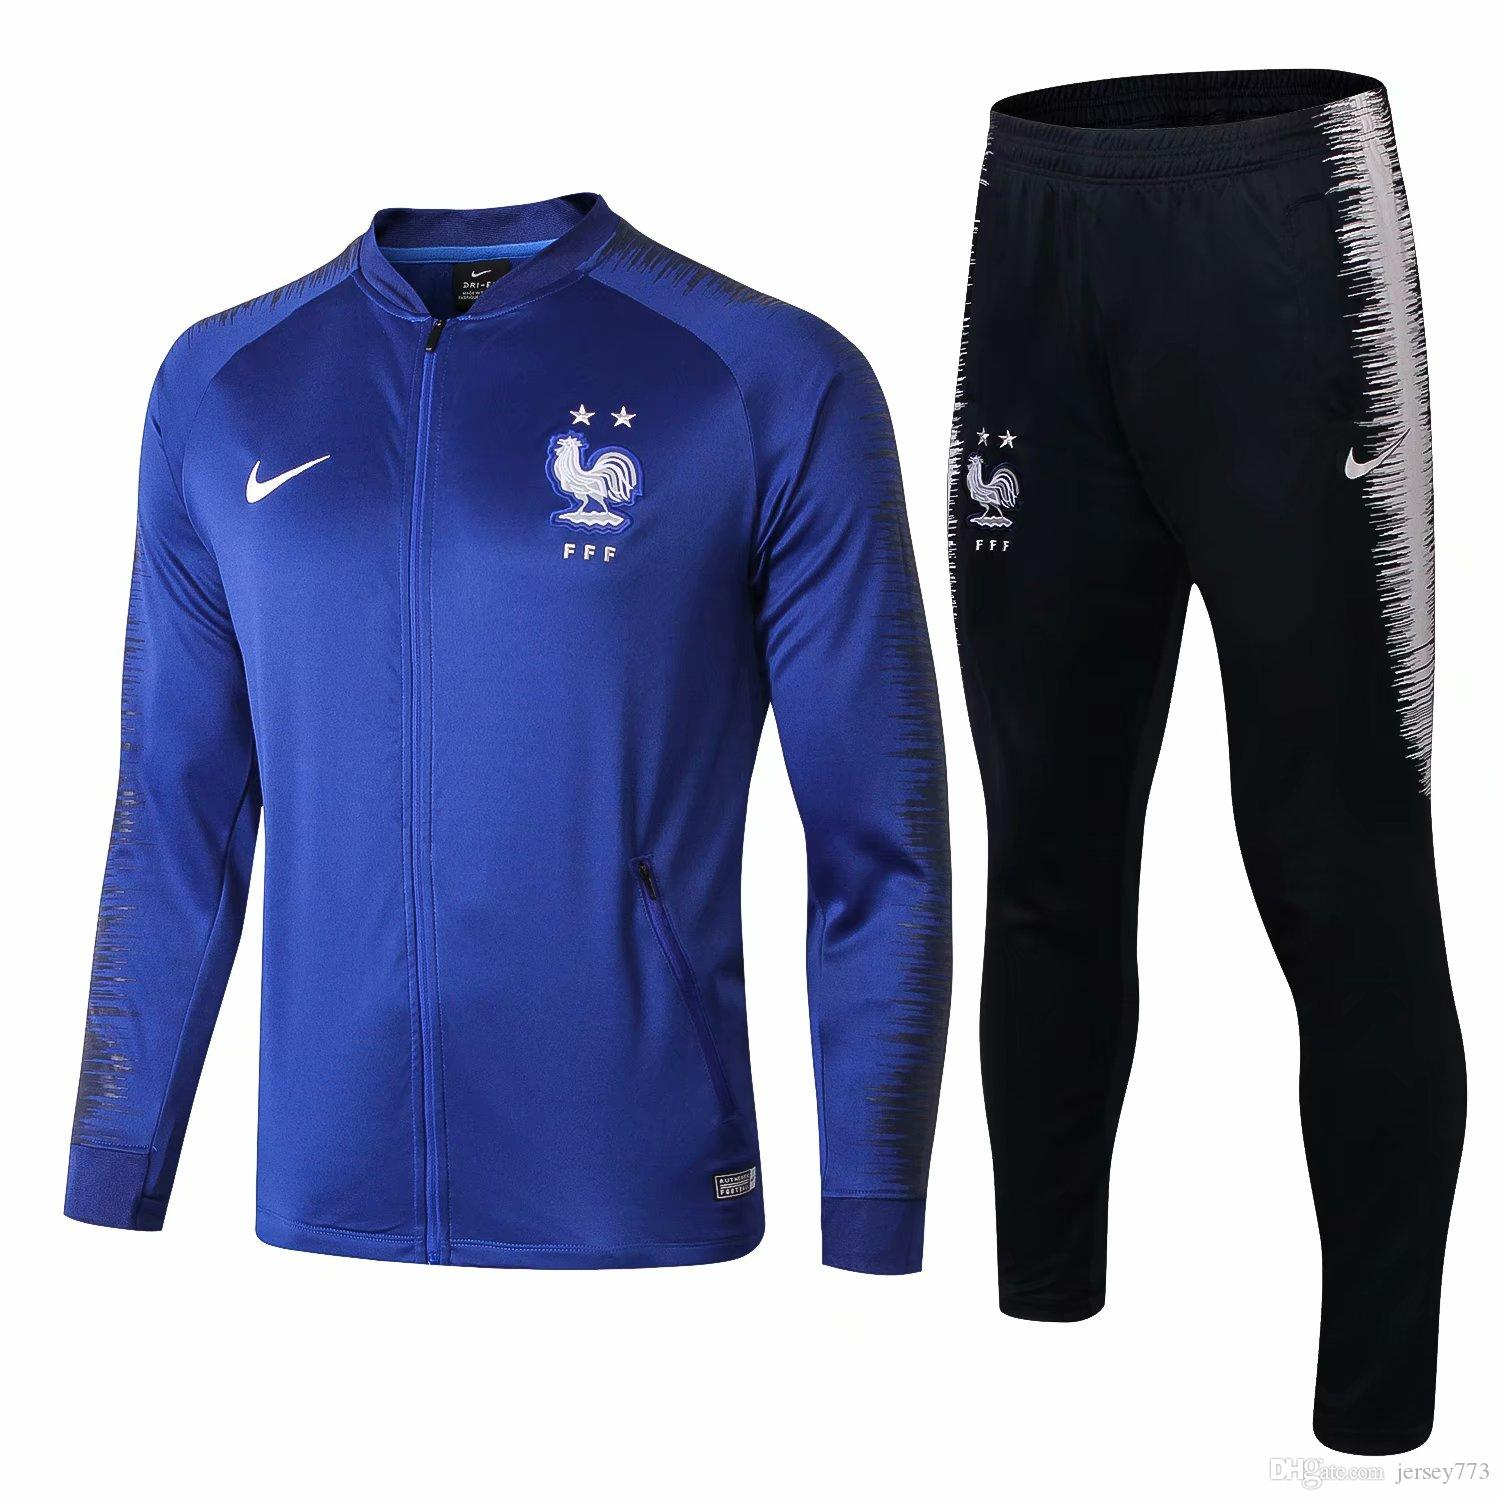 Zipper Tracksuit French 2018 19 Soccer Tracksuit Football Jacket Training Suit Adult Football Outfits Zip Jackets Pants Set Sweater 19GG